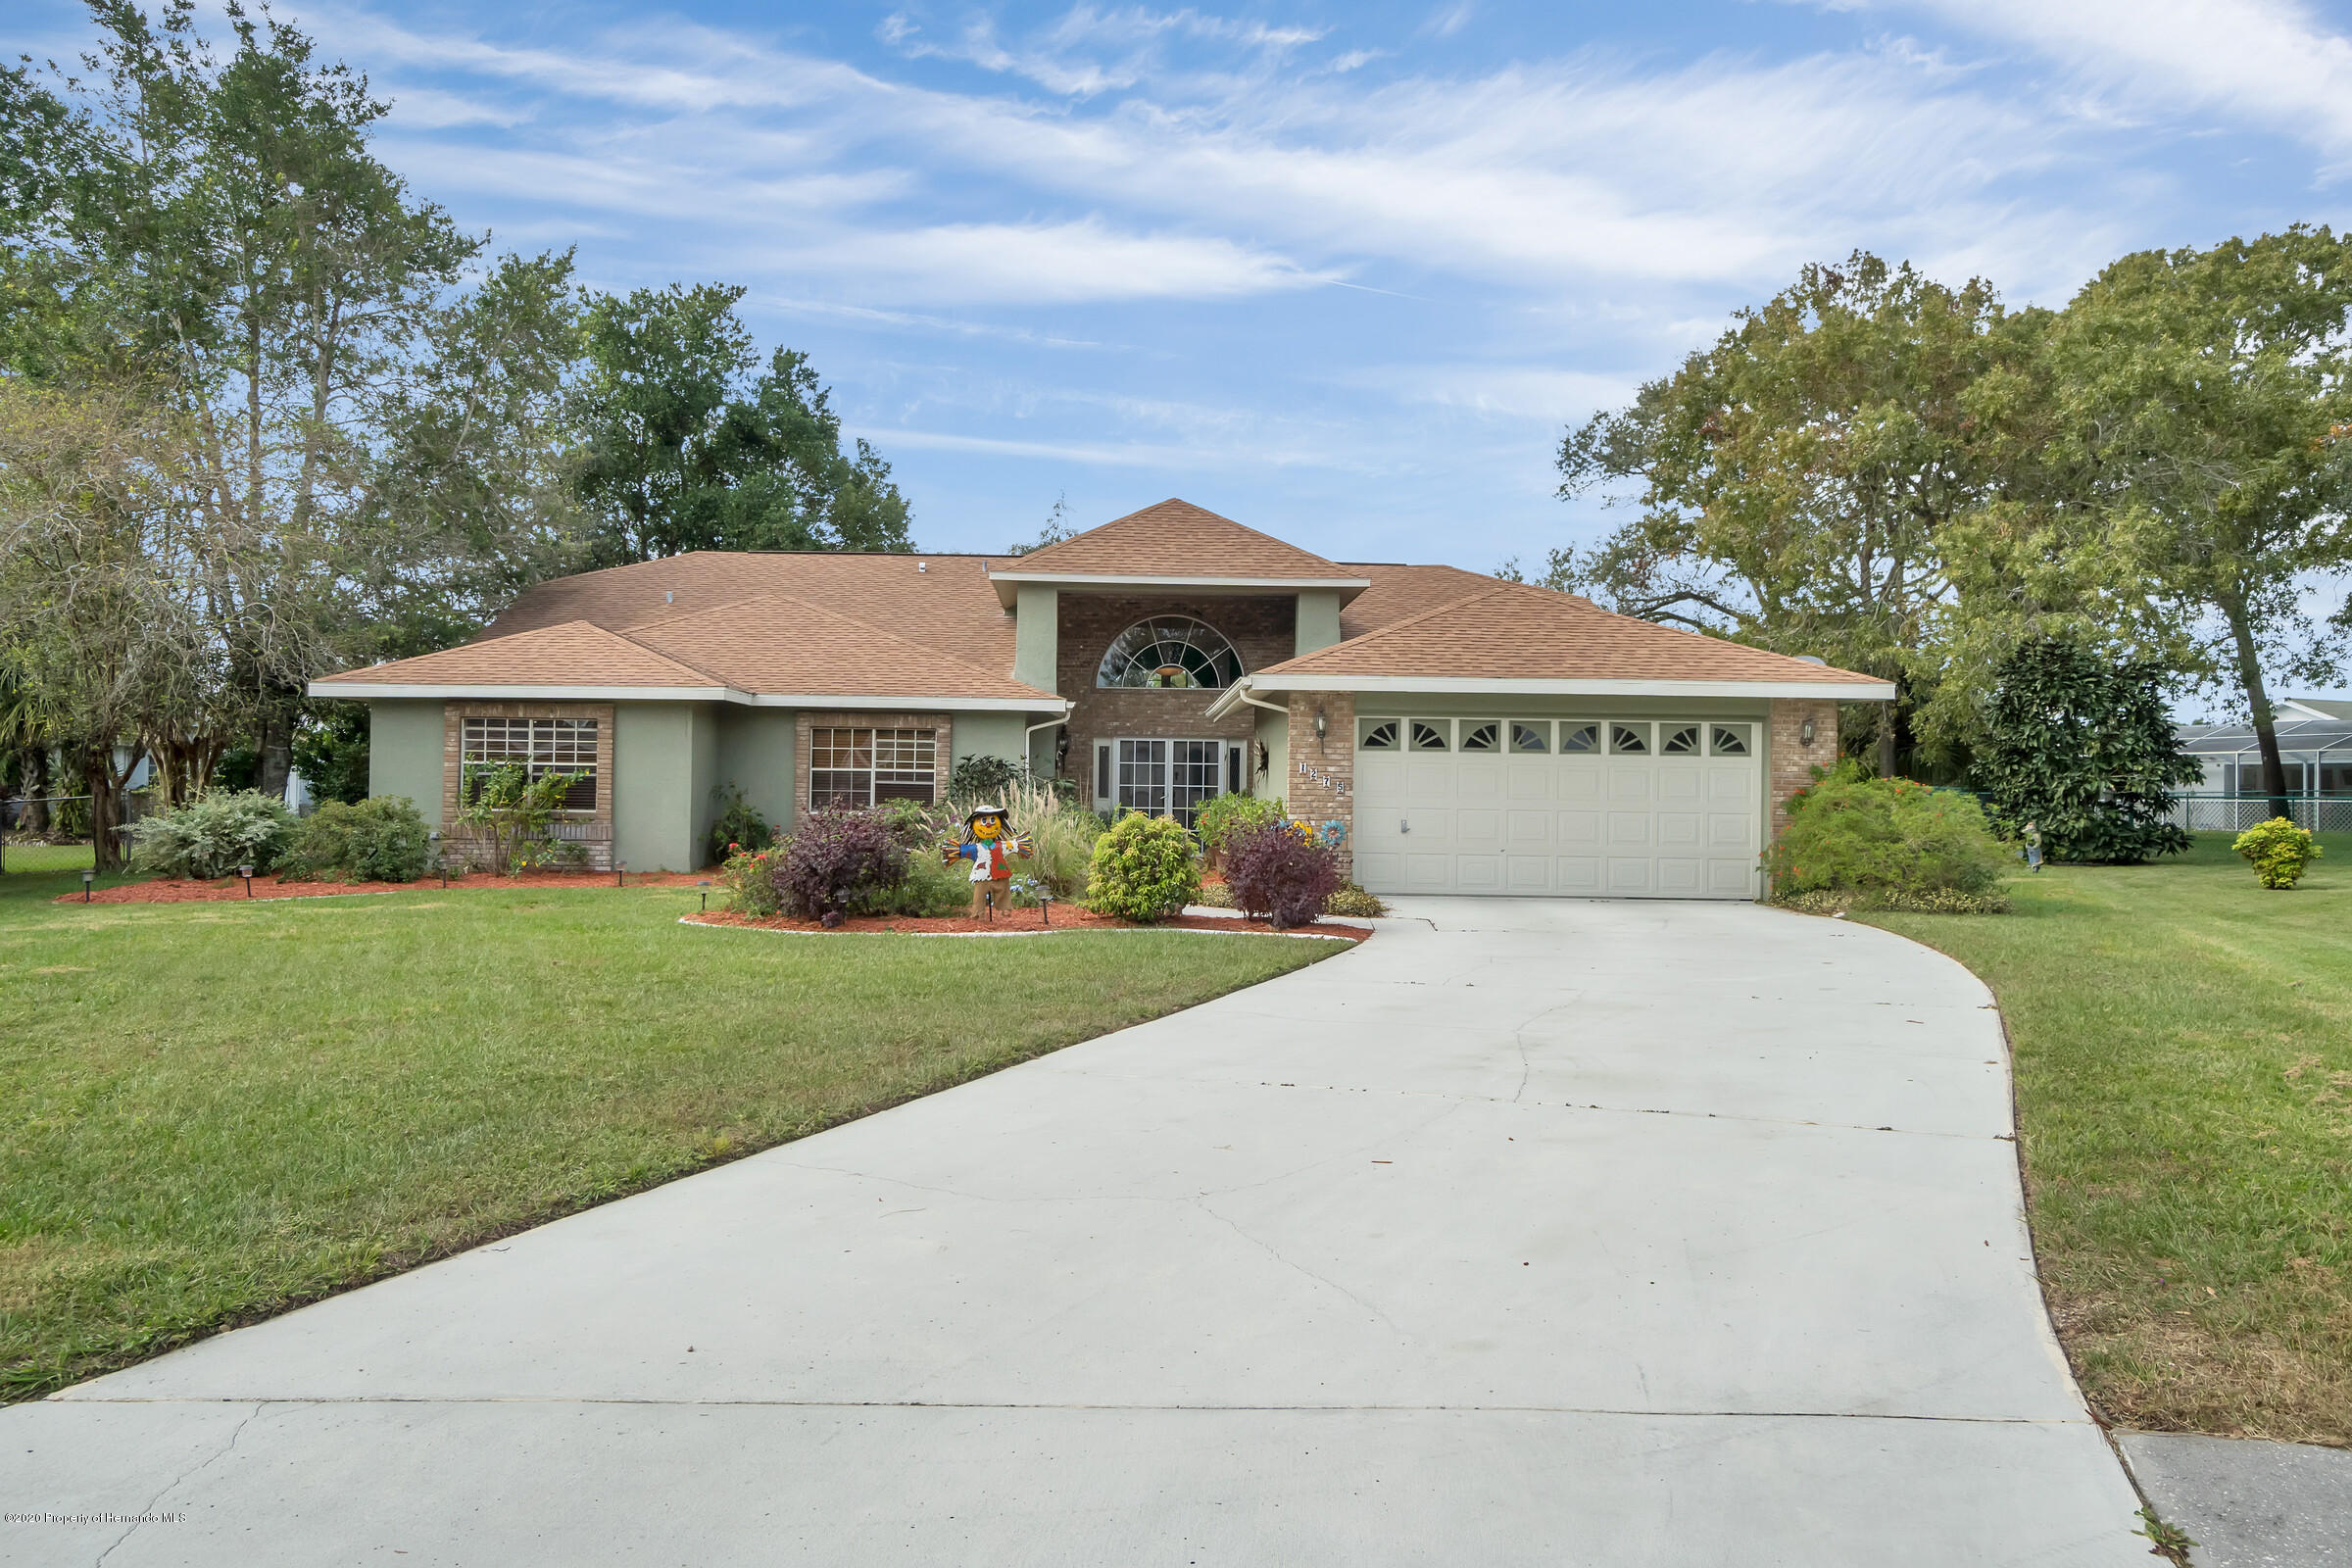 Details for 1275 Caballero Court, Spring Hill, FL 34608